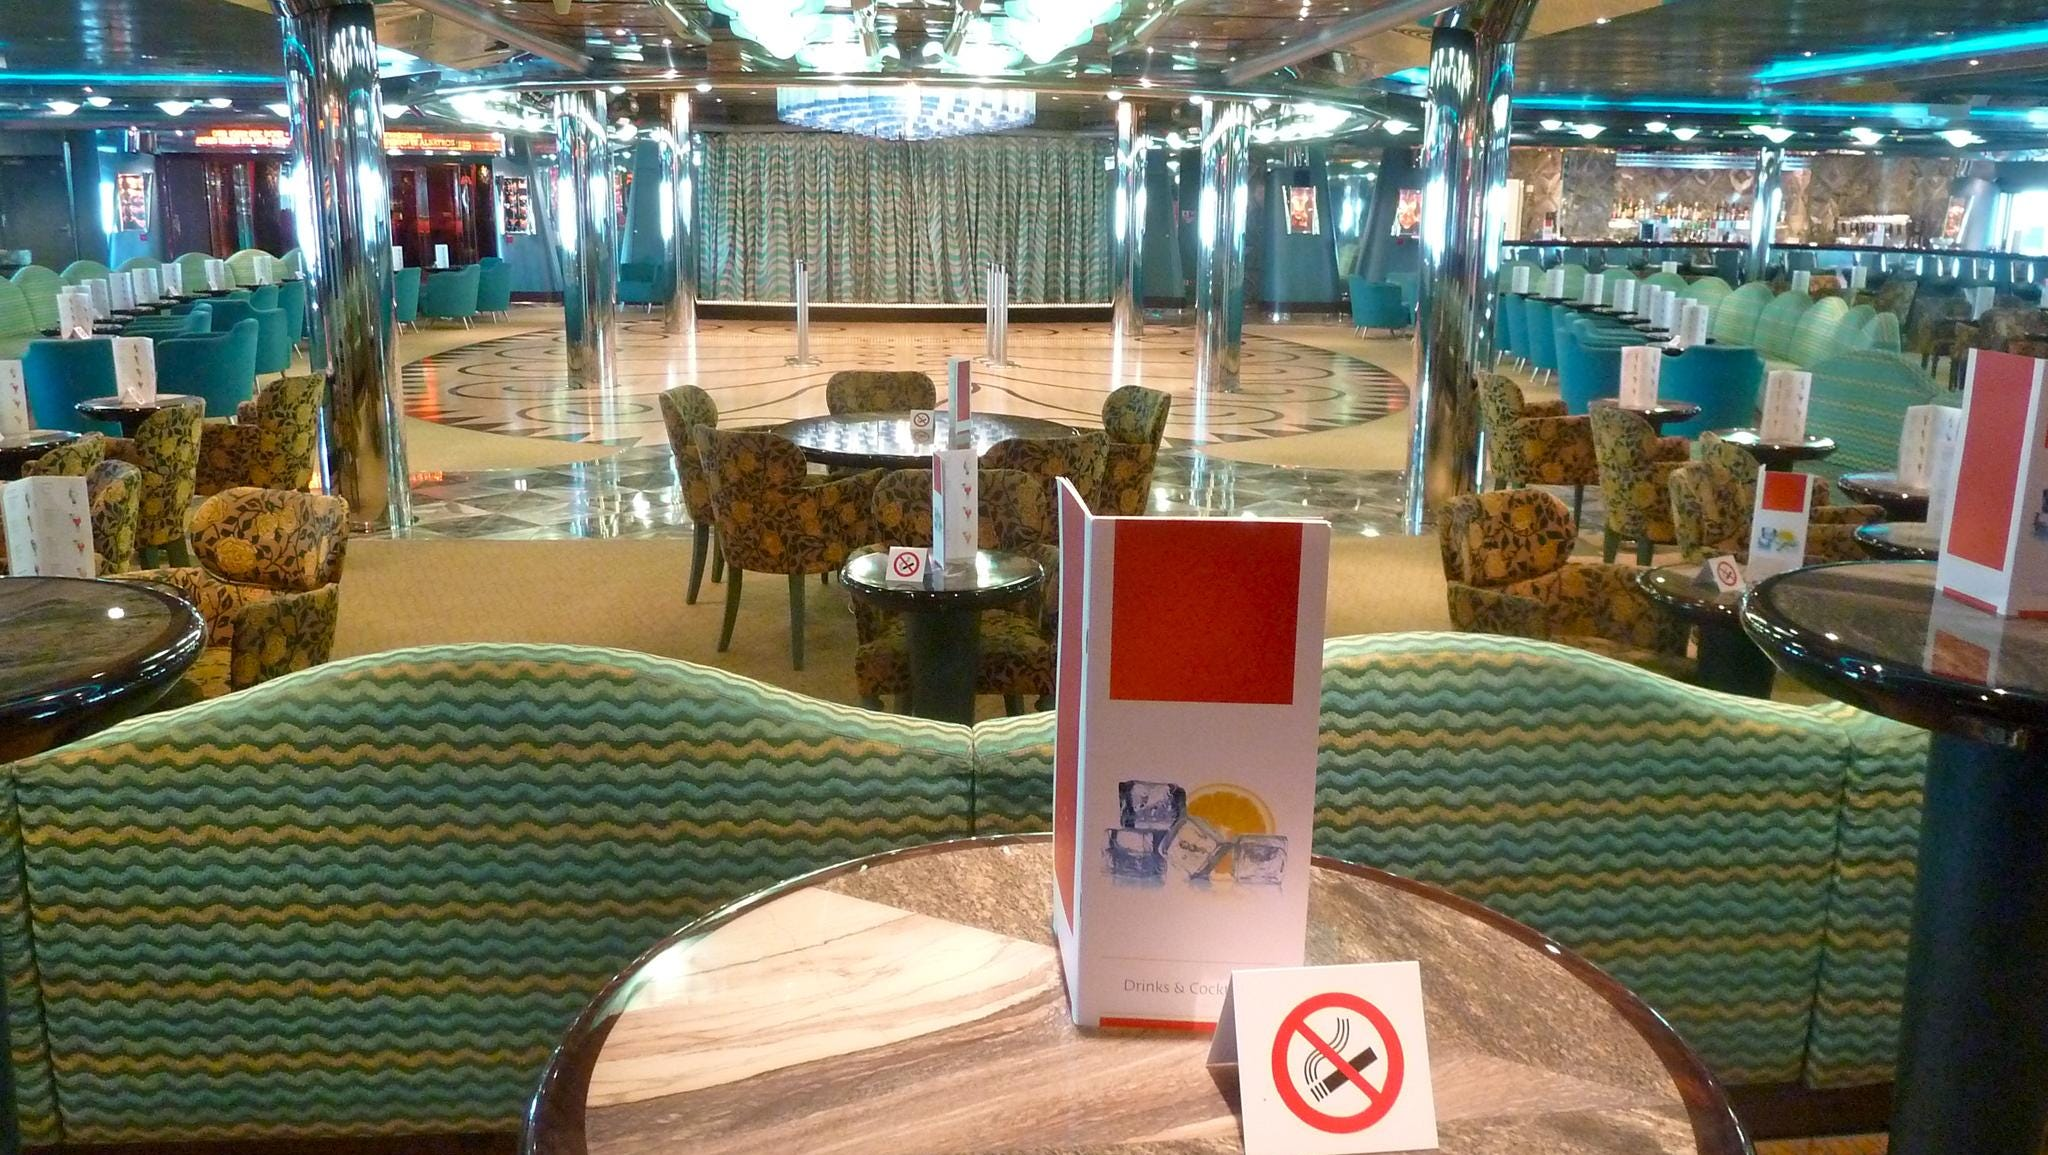 """The Grand Bar Mirabilis, which takes its name from the Latin term for """"amazing"""" and """"wonderful"""", is a large, colorful bar and lounge located just aft of Teatro Duse on Gardenia Deck."""